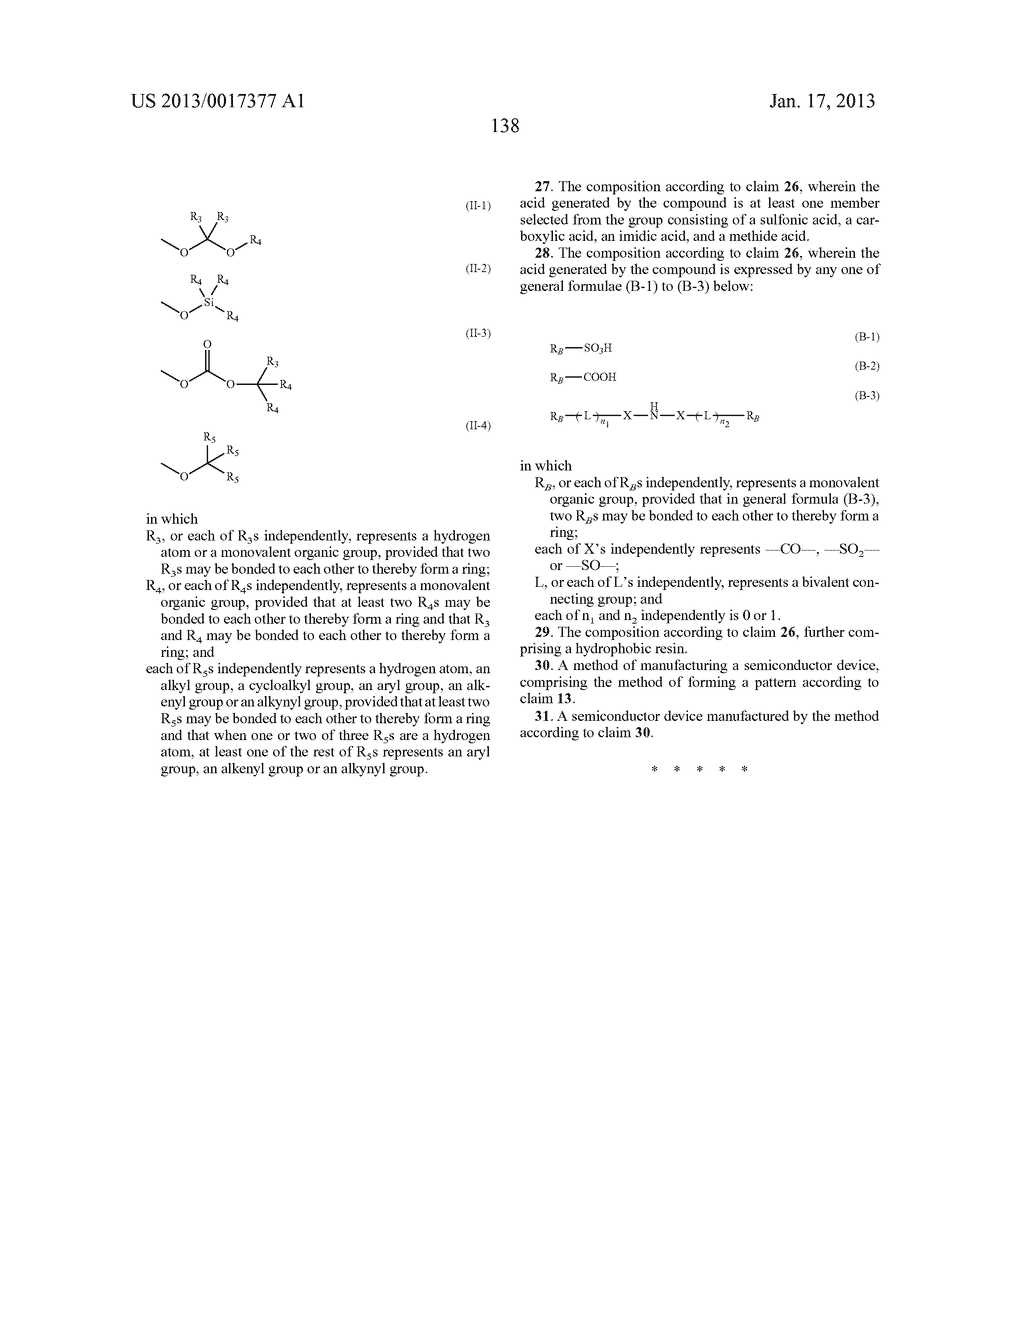 ACTINIC-RAY- OR RADIATION-SENSITIVE RESIN COMPOSITION AND METHOD OF     FORMING PATTERN USING THE SAMEAANM Kataoka; ShoheiAACI ShizuokaAACO JPAAGP Kataoka; Shohei Shizuoka JPAANM Iwato; KaoruAACI ShizuokaAACO JPAAGP Iwato; Kaoru Shizuoka JPAANM Kamimura; SouAACI ShizuokaAACO JPAAGP Kamimura; Sou Shizuoka JPAANM Tsuchihashi; ToruAACI ShizuokaAACO JPAAGP Tsuchihashi; Toru Shizuoka JPAANM Enomoto; YuichiroAACI ShizuokaAACO JPAAGP Enomoto; Yuichiro Shizuoka JPAANM Fujii; KanaAACI ShizuokaAACO JPAAGP Fujii; Kana Shizuoka JPAANM Mizutani; KazuyoshiAACI ShizuokaAACO JPAAGP Mizutani; Kazuyoshi Shizuoka JPAANM Tarutani; ShinjiAACI ShizuokaAACO JPAAGP Tarutani; Shinji Shizuoka JPAANM Kato; KeitaAACI ShizuokaAACO JPAAGP Kato; Keita Shizuoka JP - diagram, schematic, and image 139